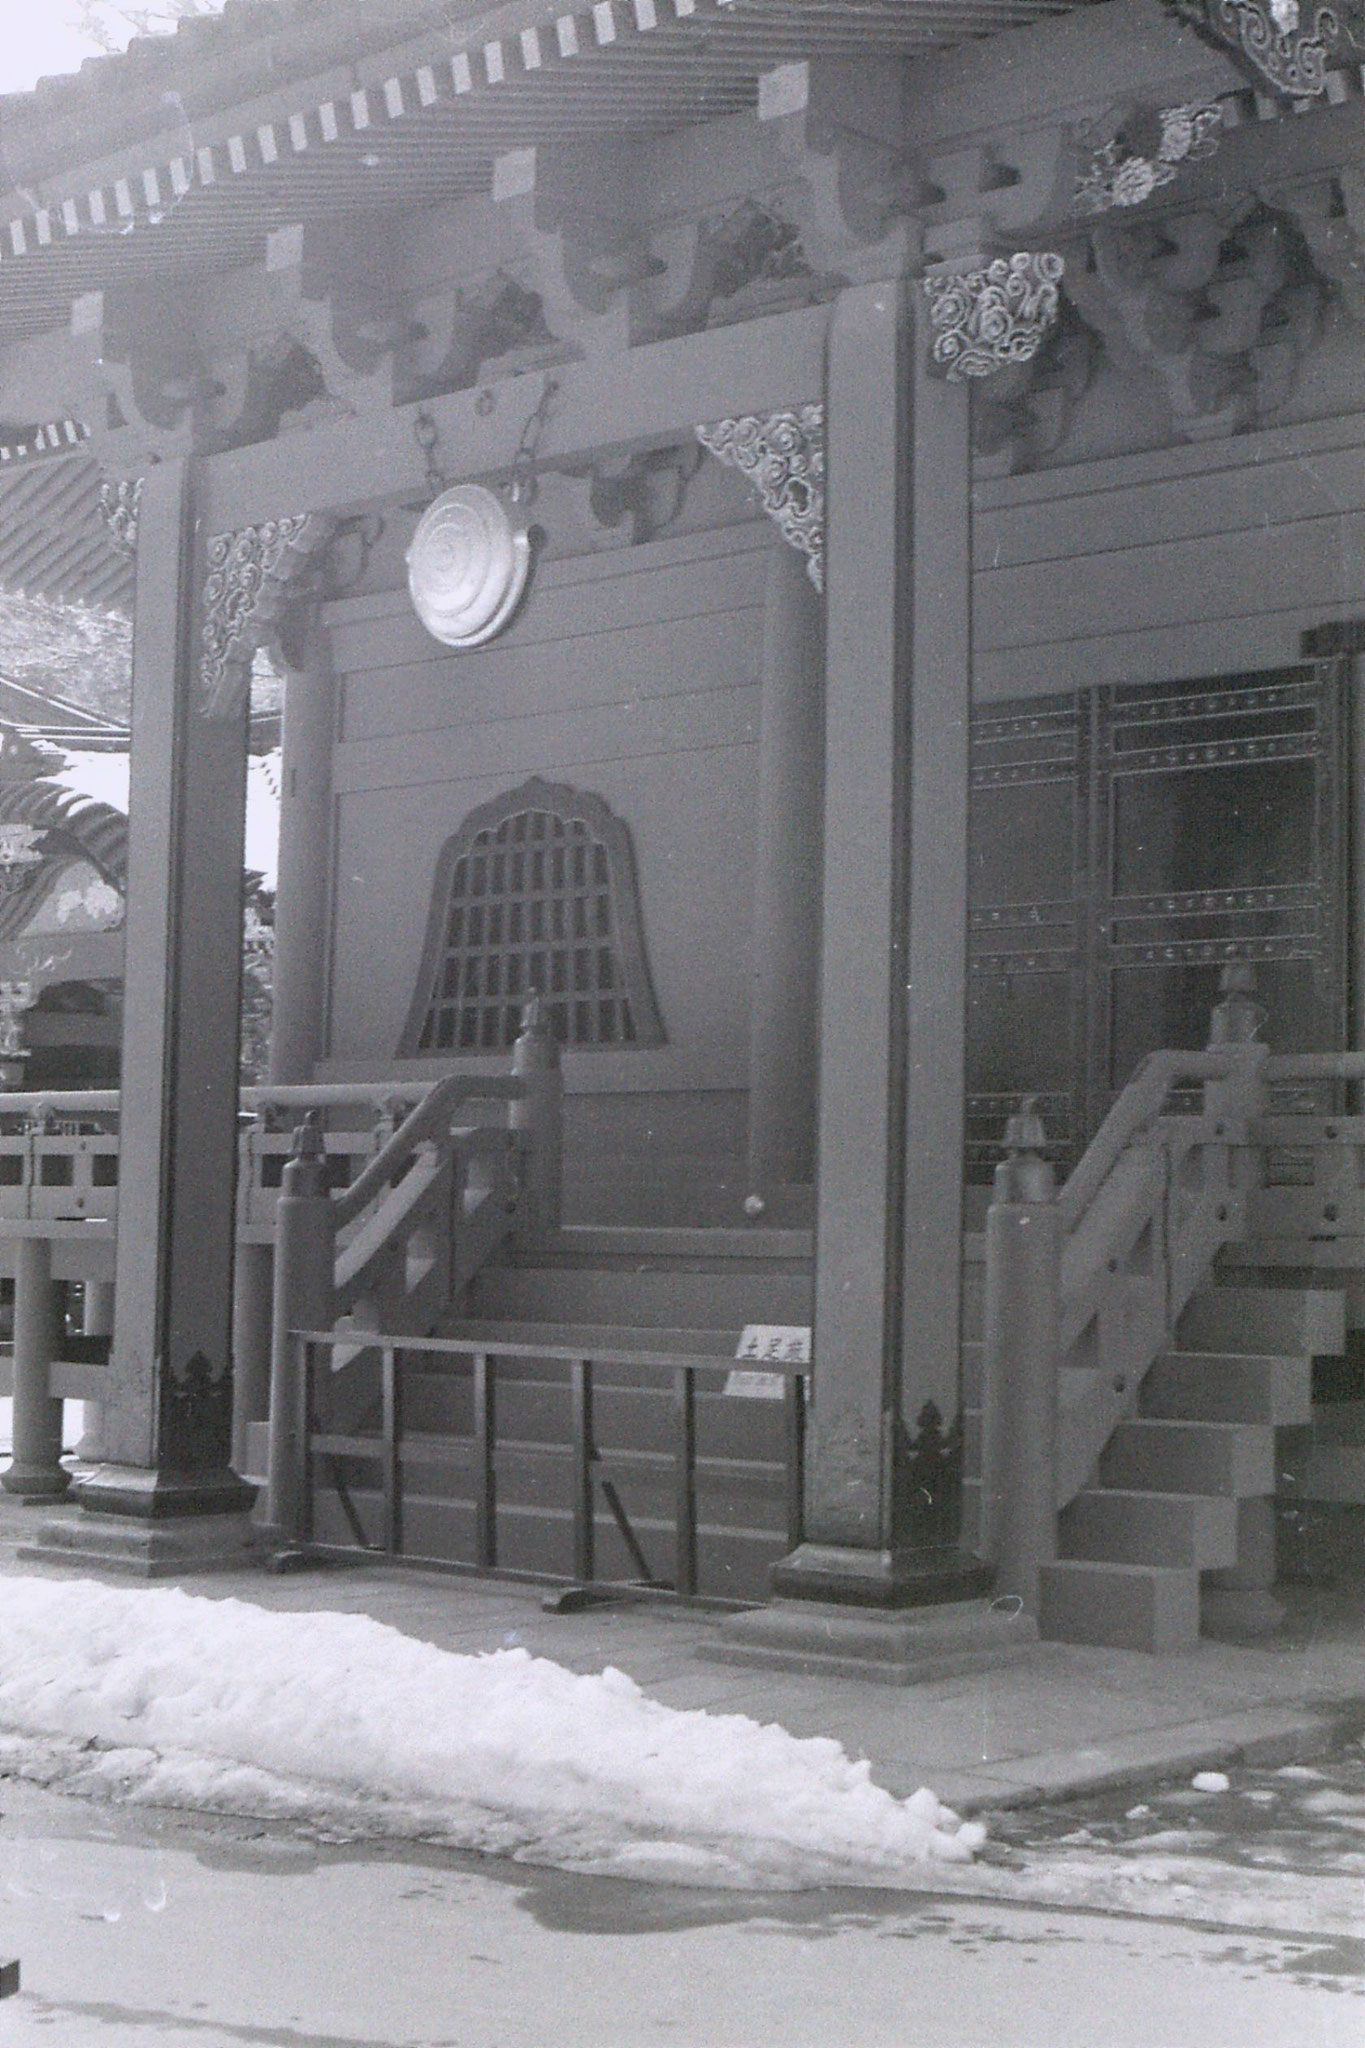 31/1/1989: 3: Buddhist shaped bell and bell shaped window at entrance to Daiyuin